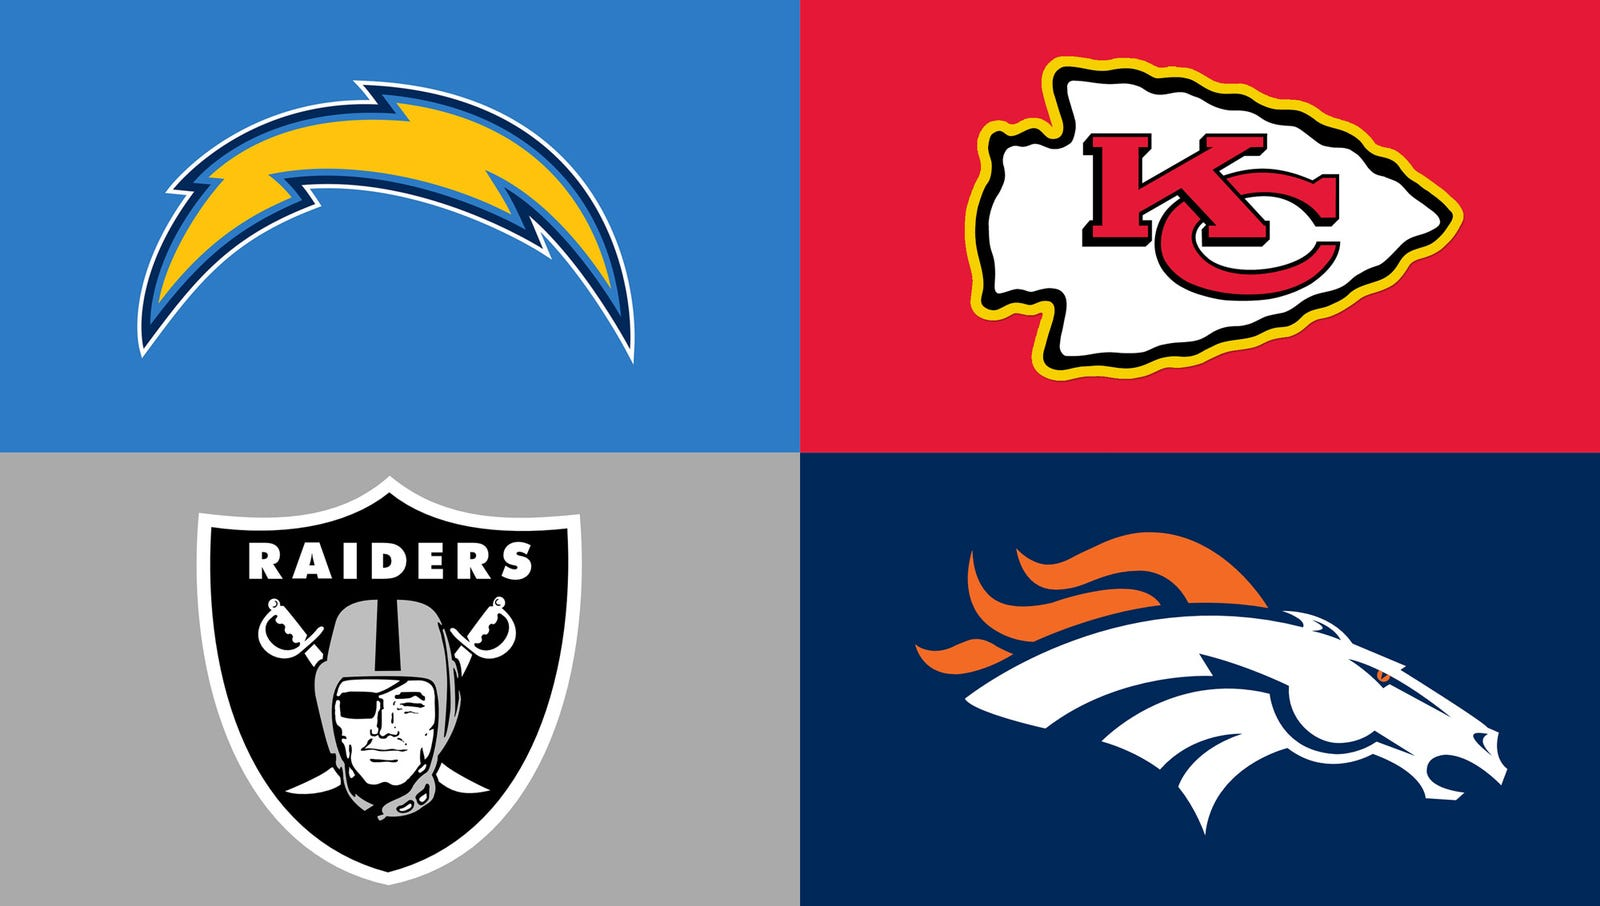 With the 2014 NFL season kicking off this week, Onion Sports has in-depth analysis on each team in the AFC West.